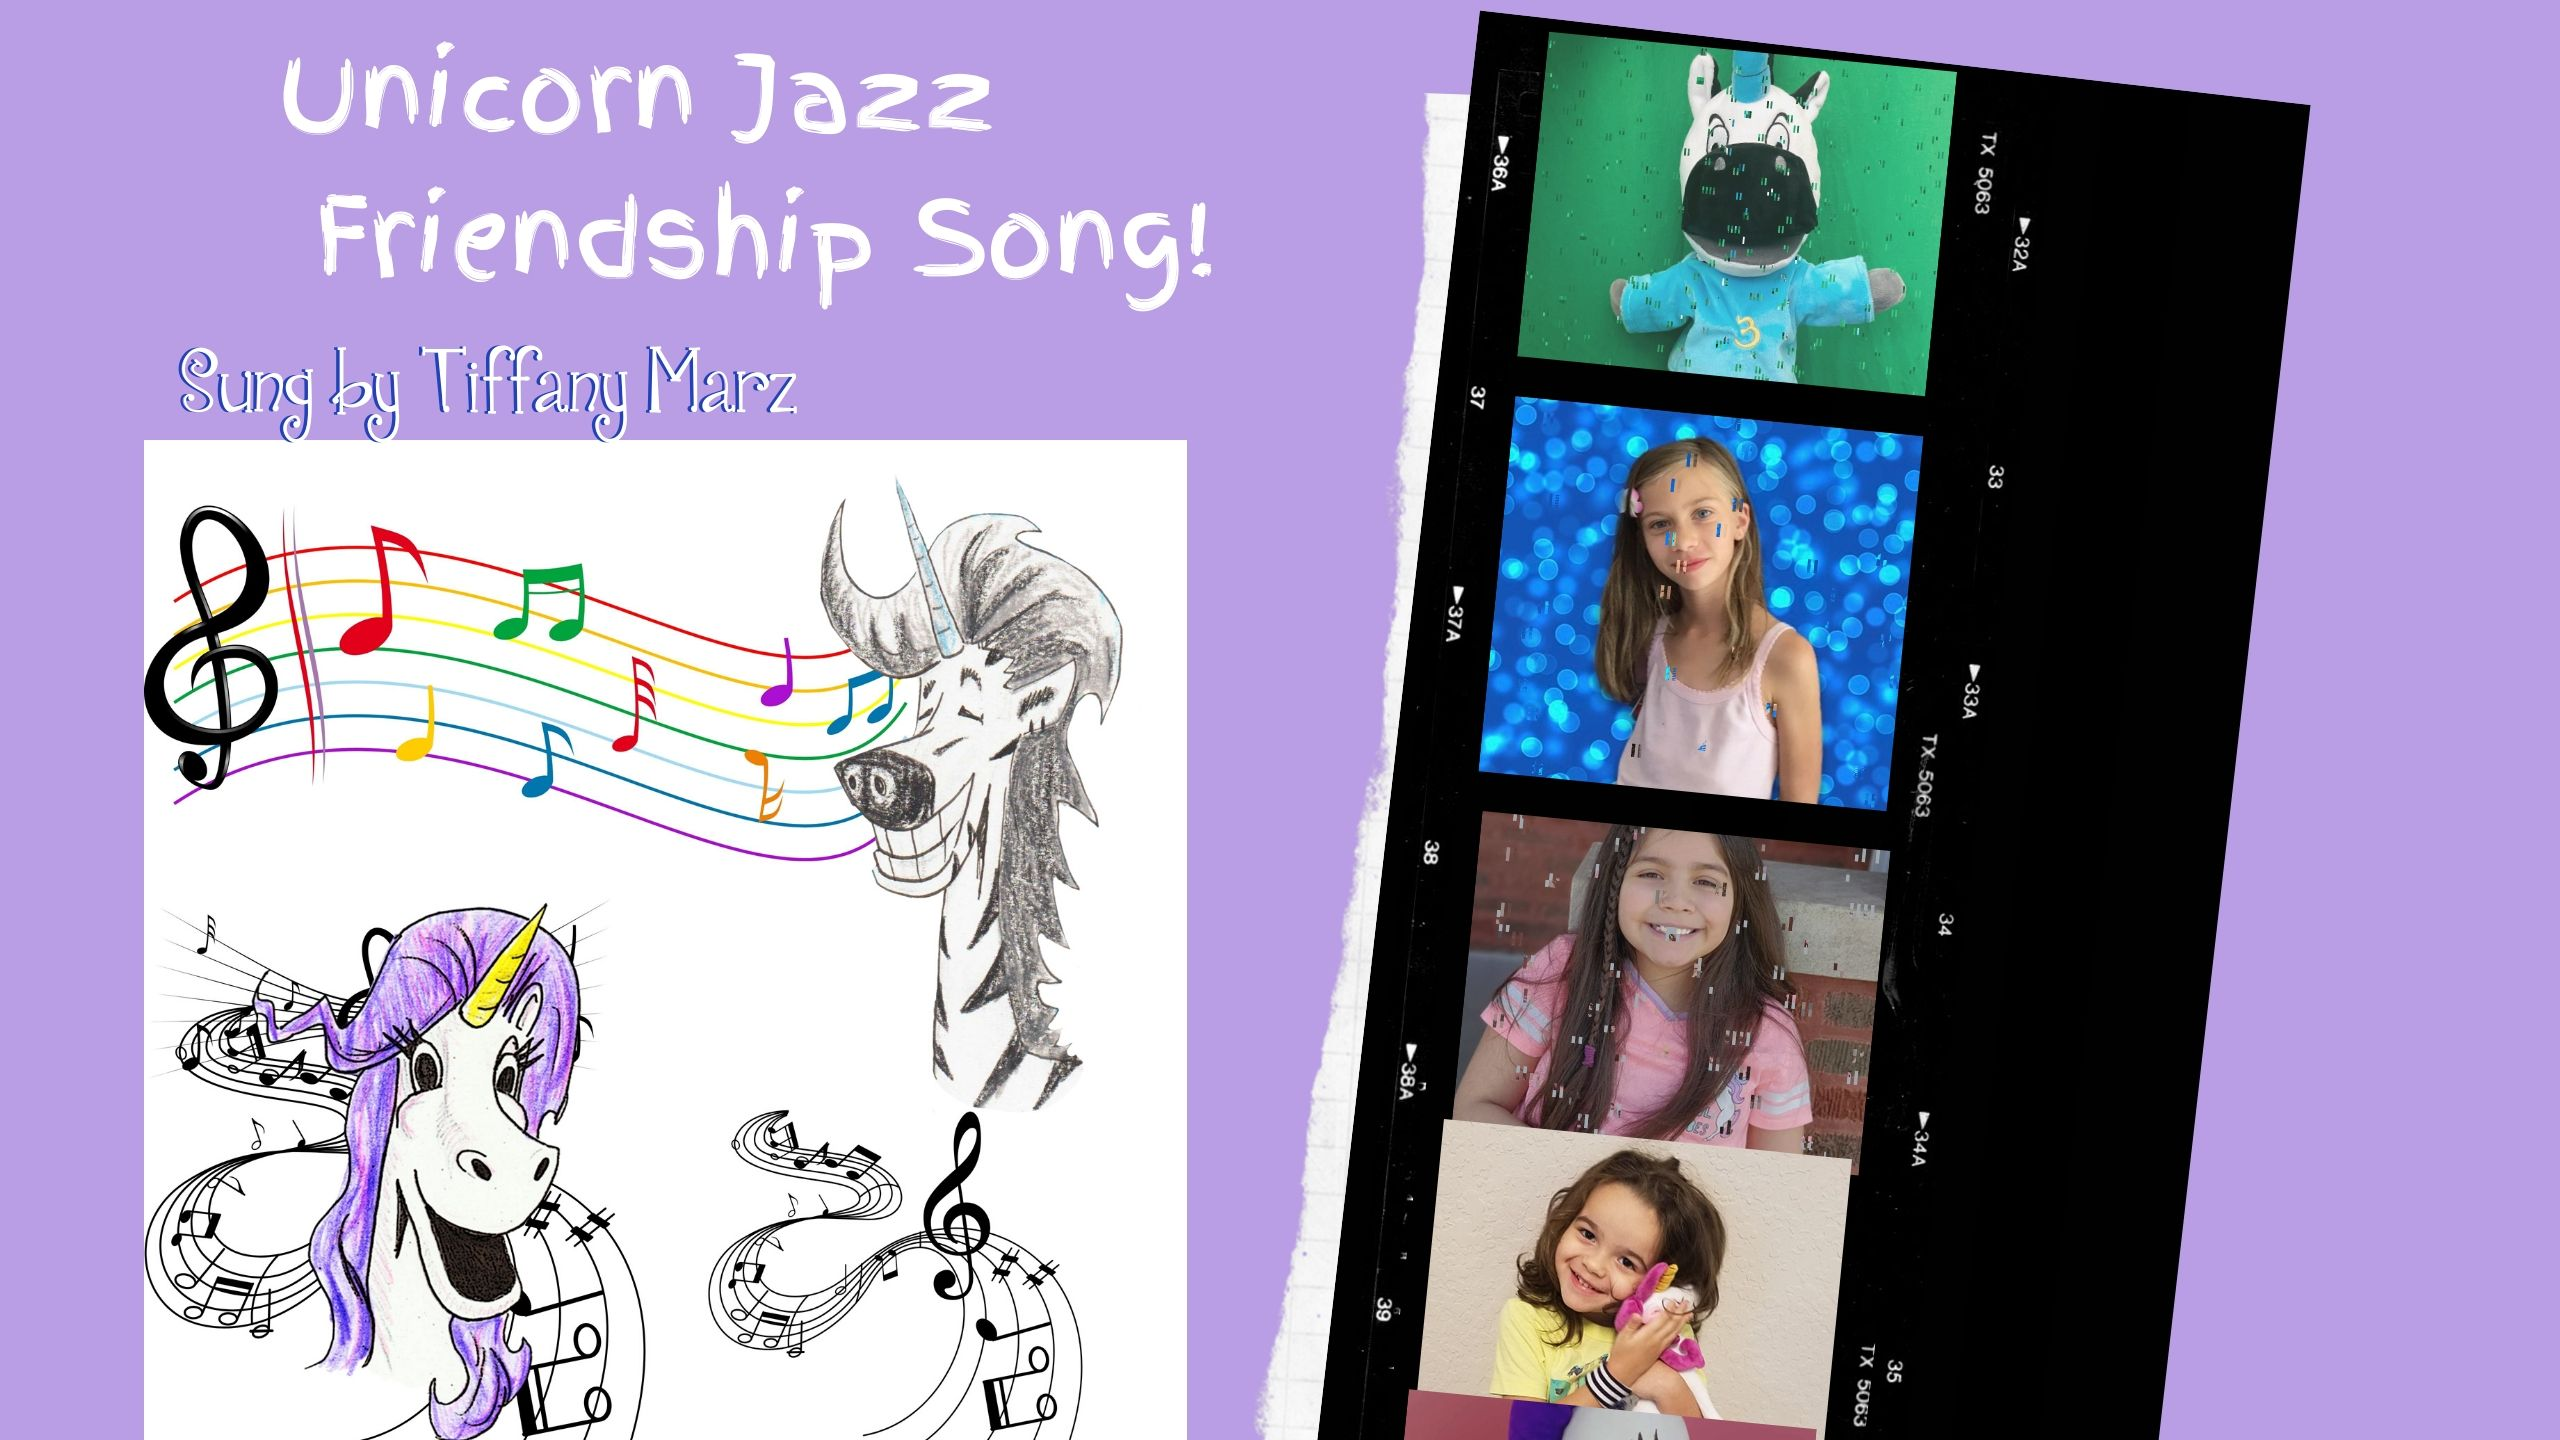 unicorn jazz music video tiffany marz Kids Music Video